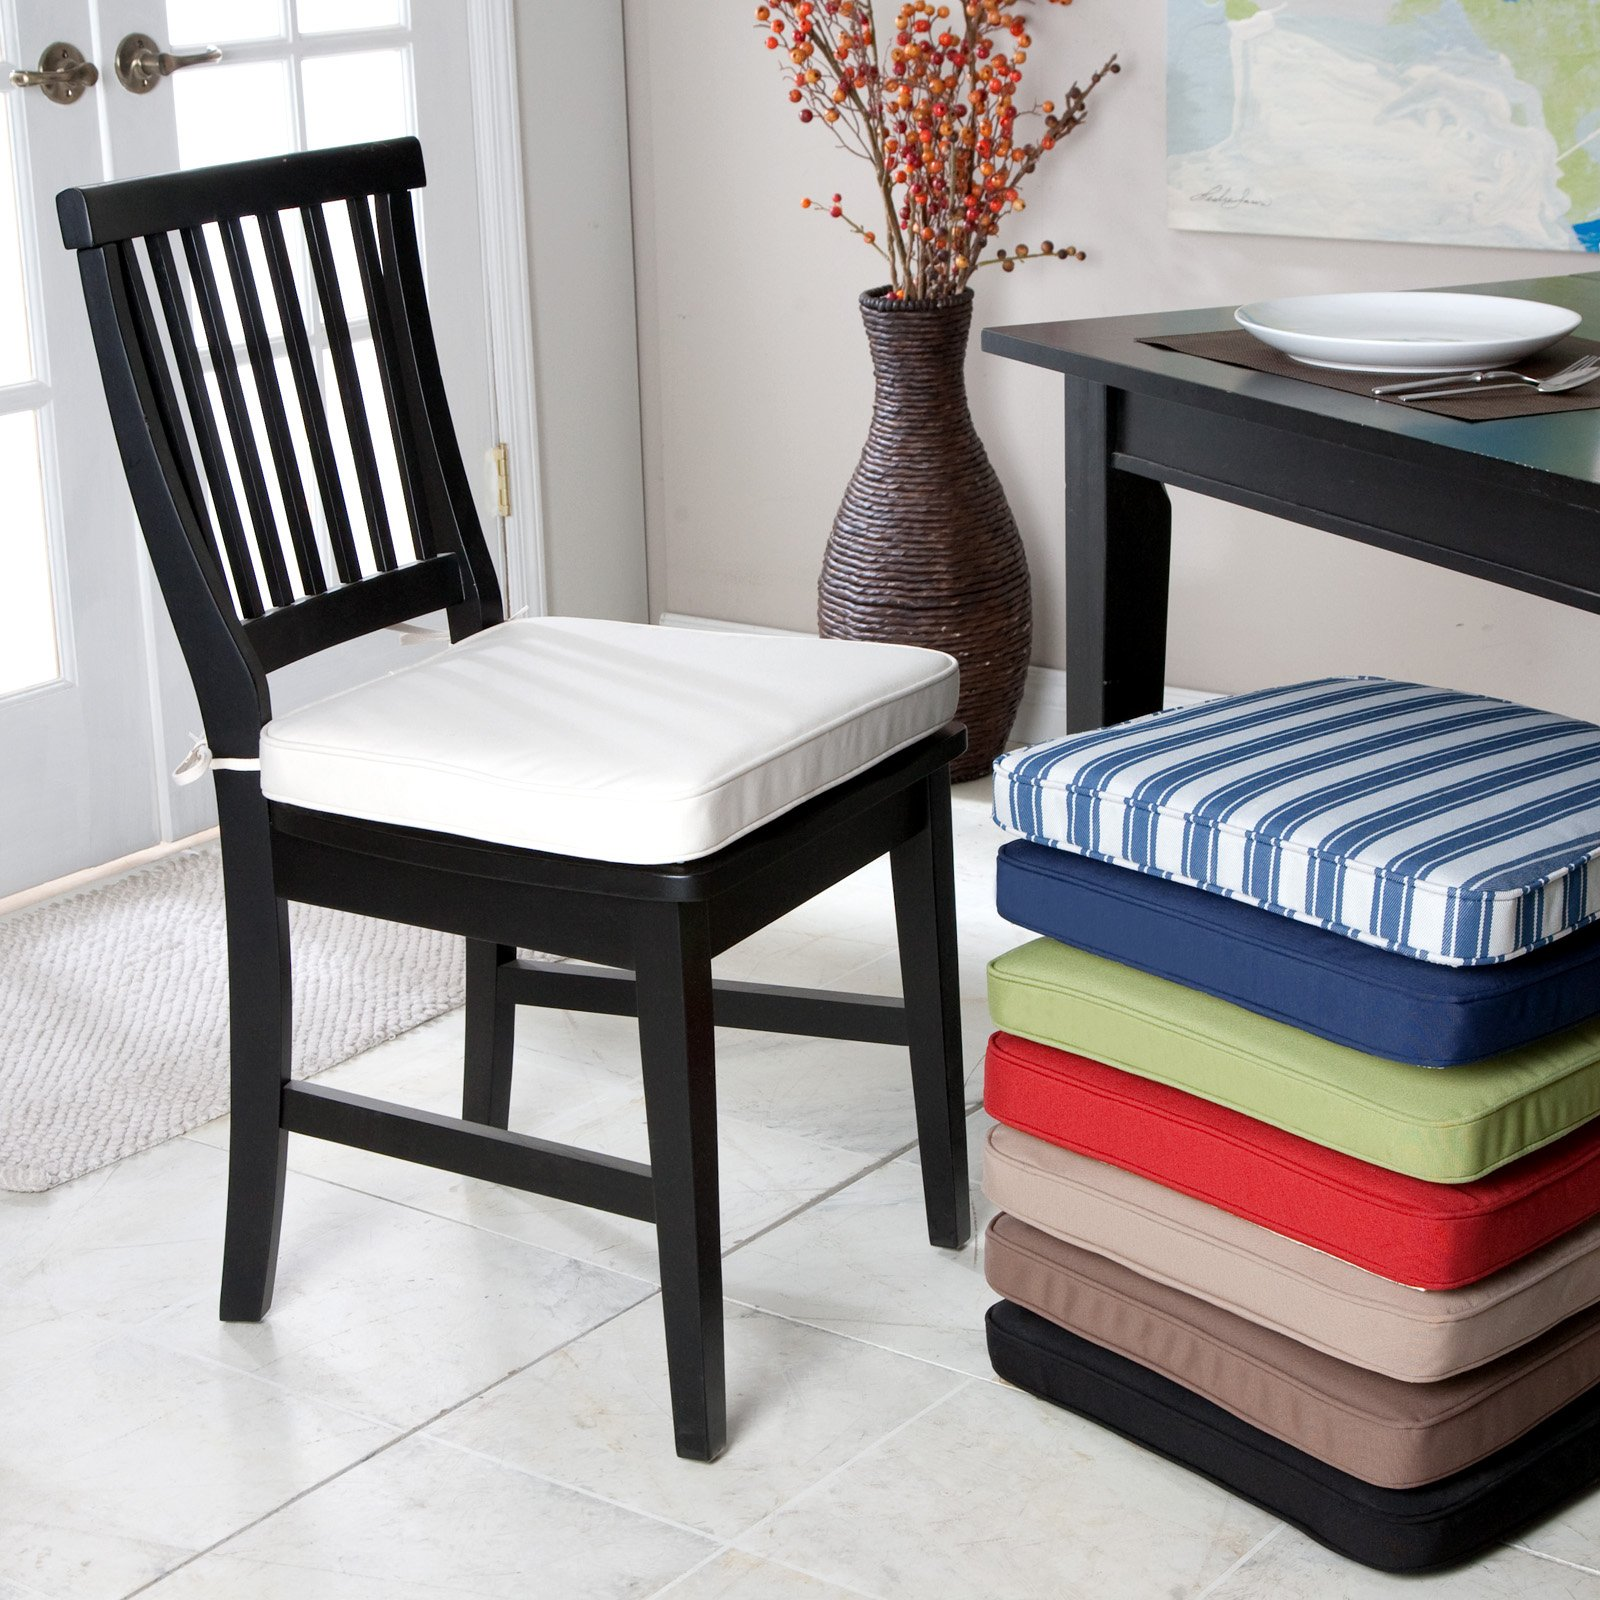 Seat Cushions Dining Room Chairs